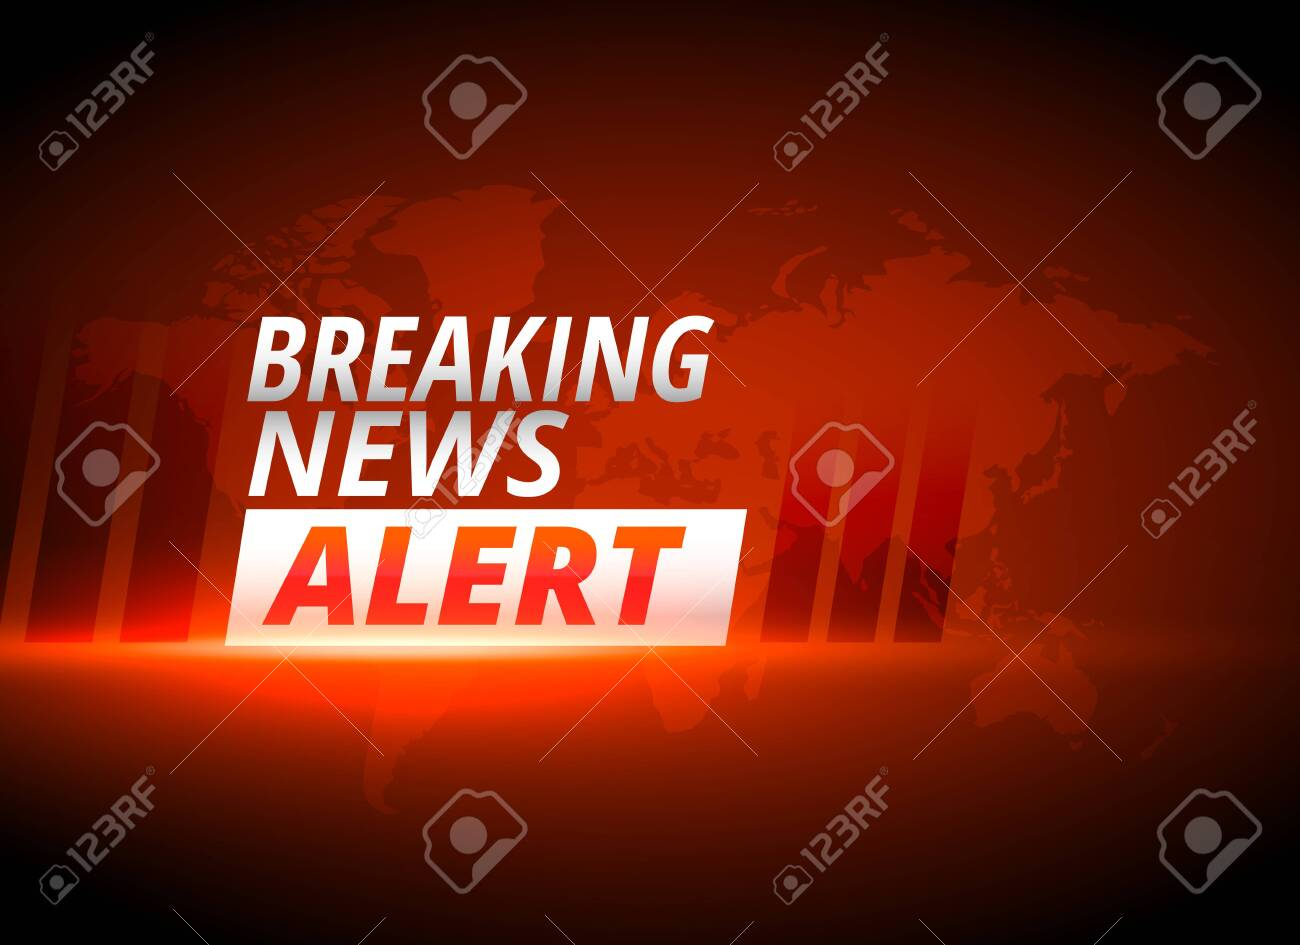 breaking news alert background in red theme - 149323195